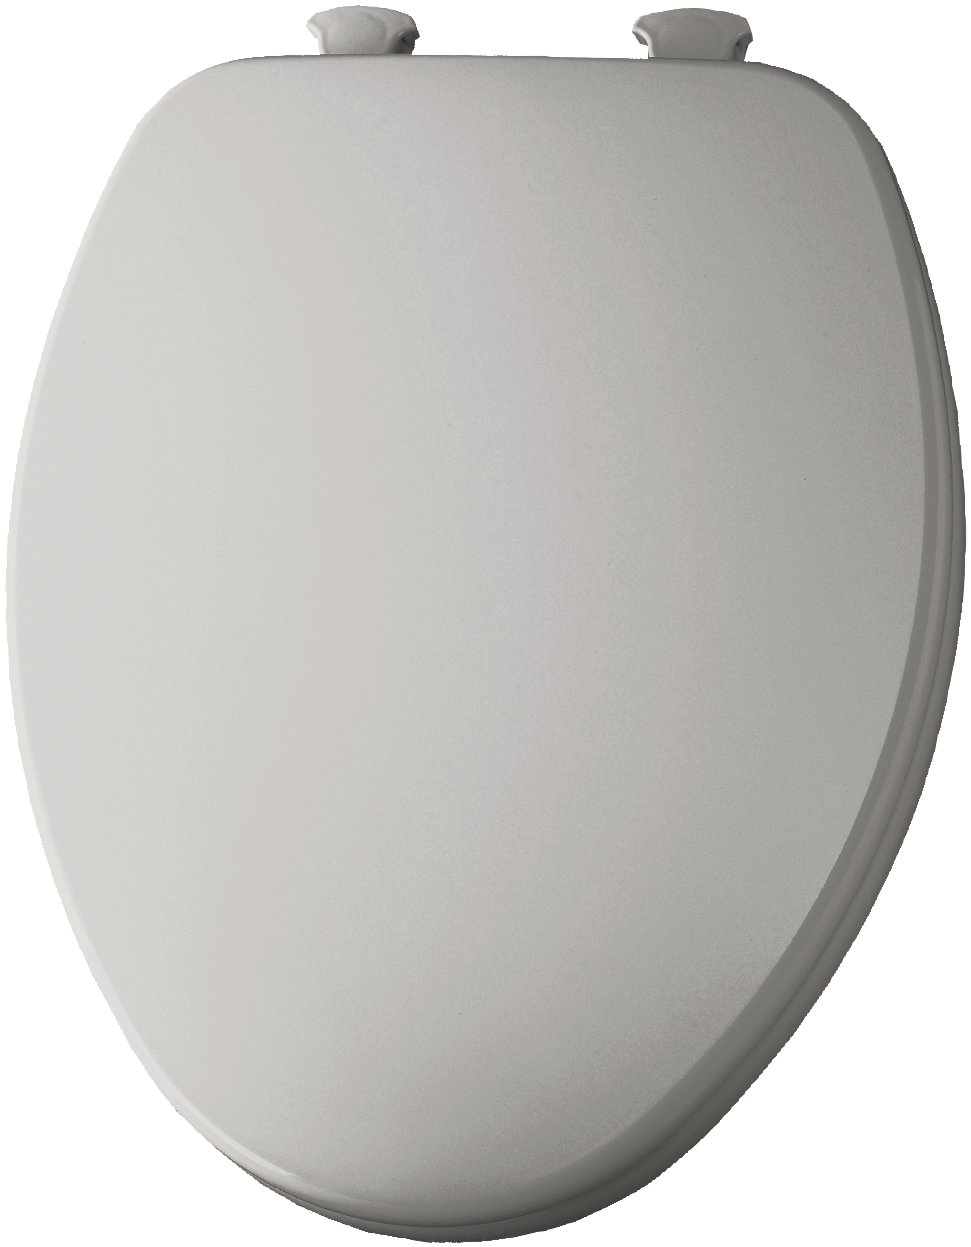 Elongated Molded Wood Toilet Seat with Easy Clean & Change Hinge Silver